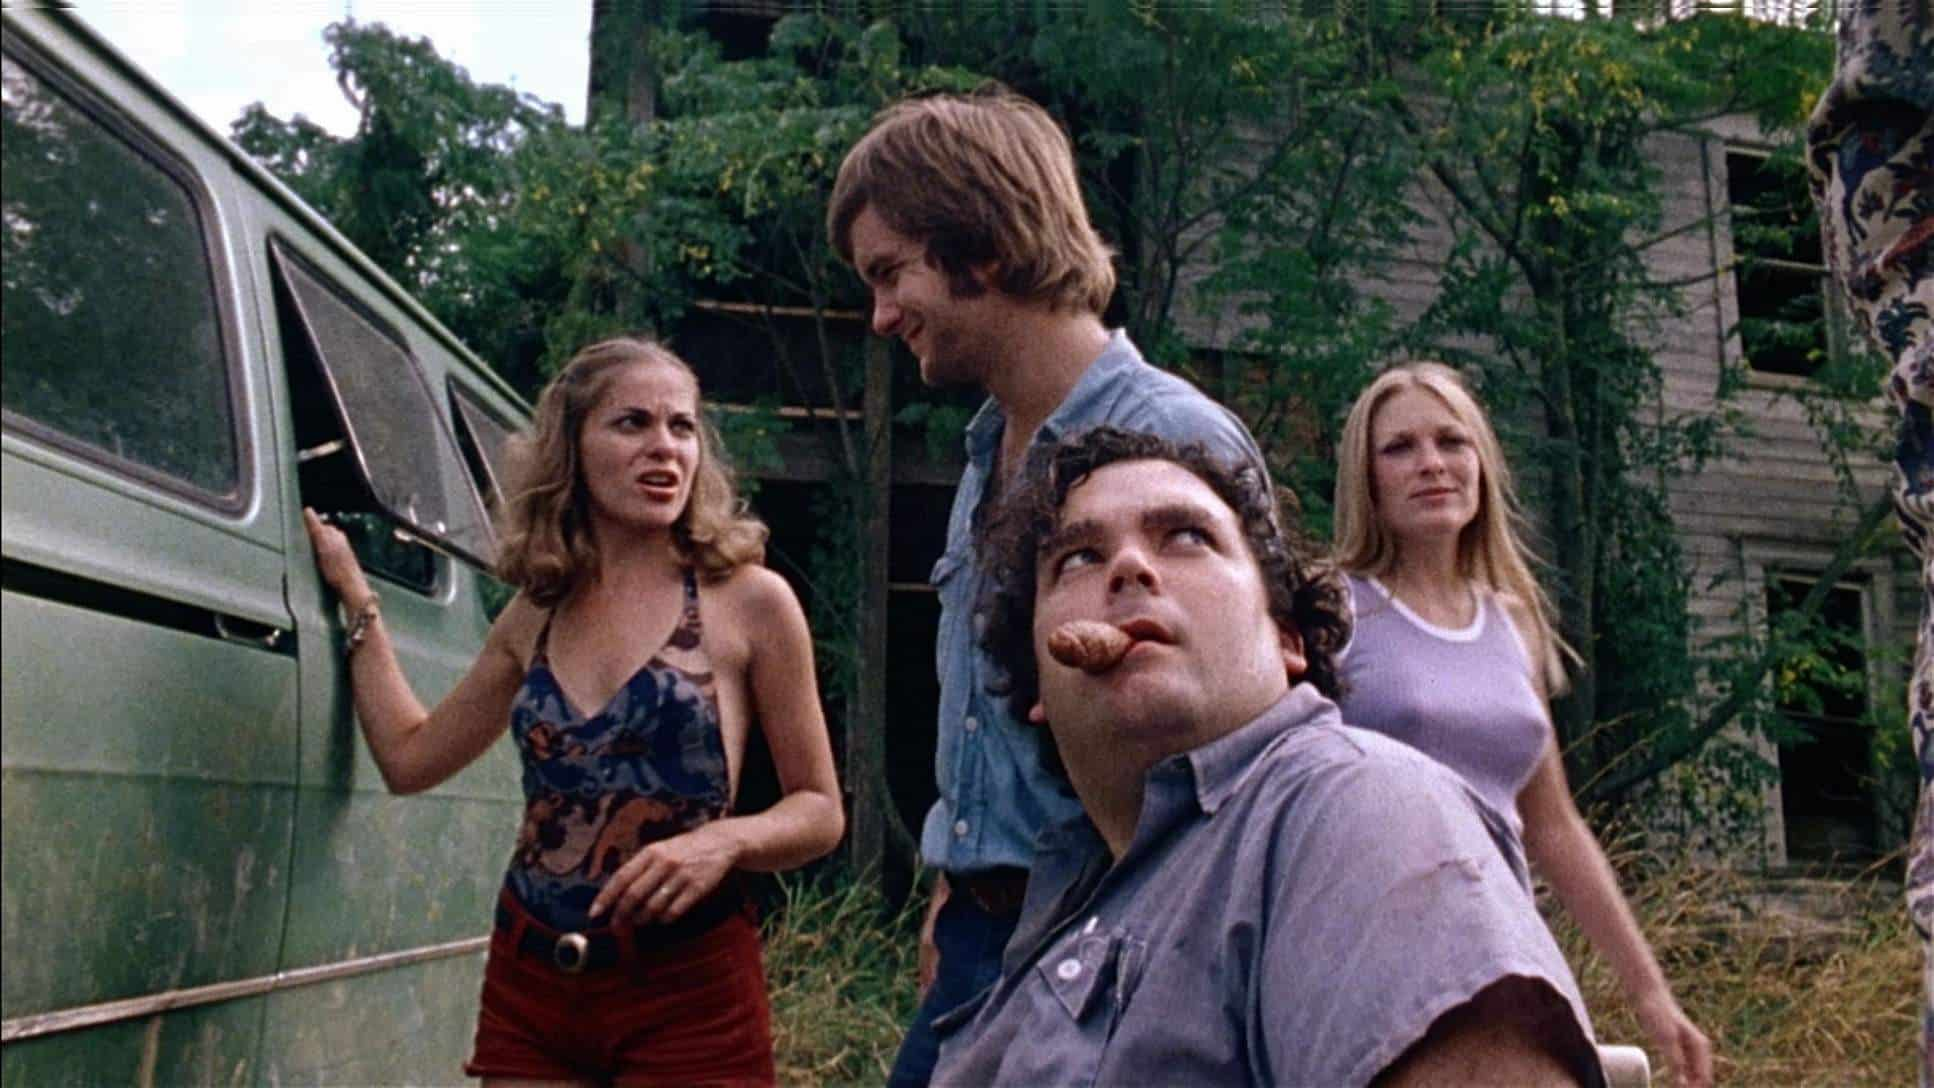 The Texas Chain Saw Massacre- The group of young individuals